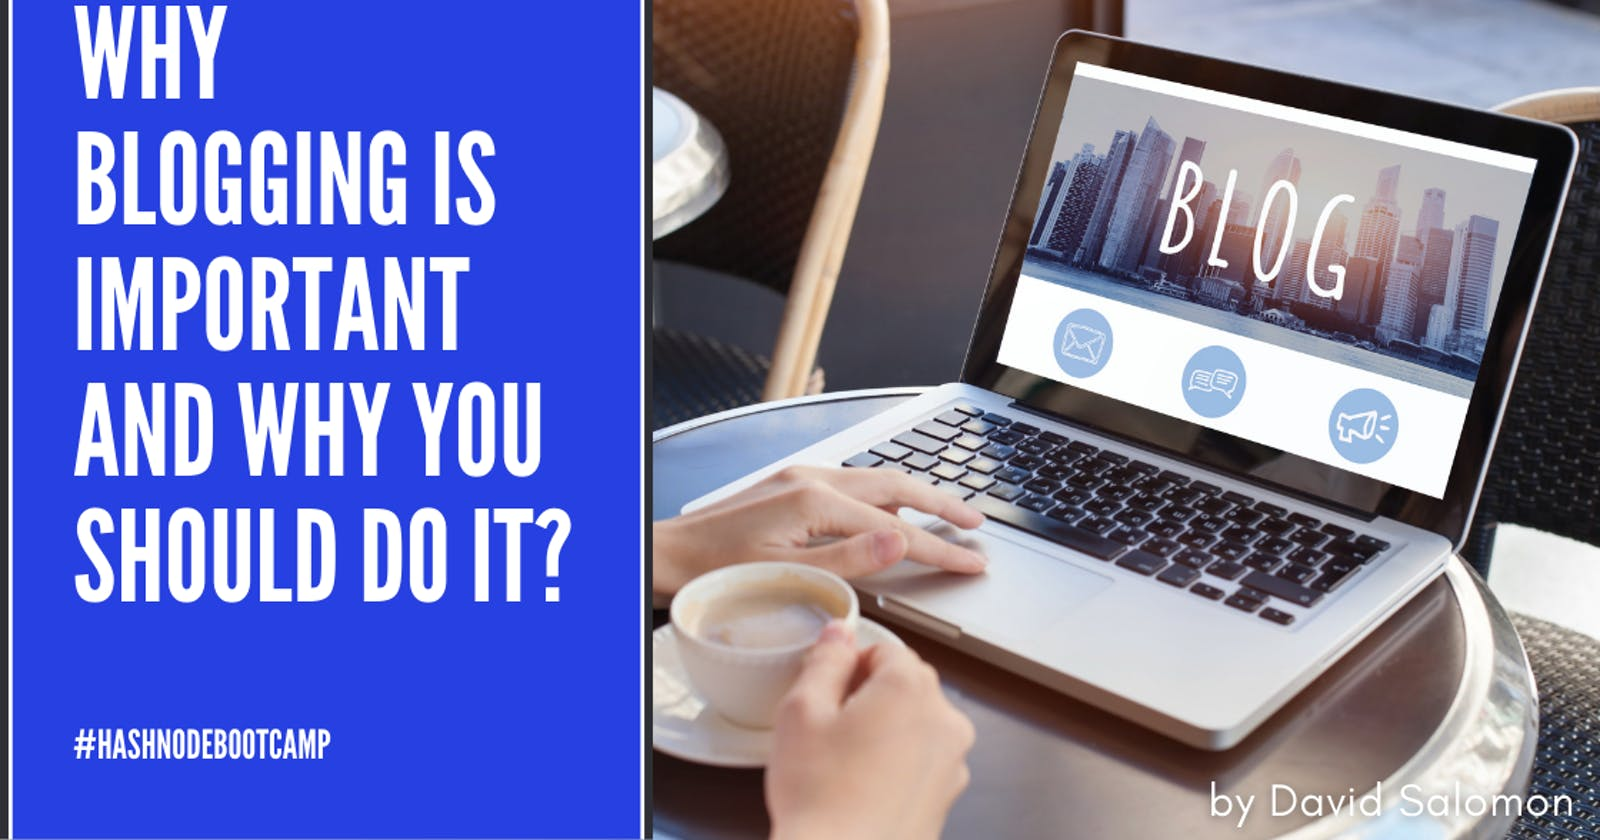 Why blogging is important and why you should do it?